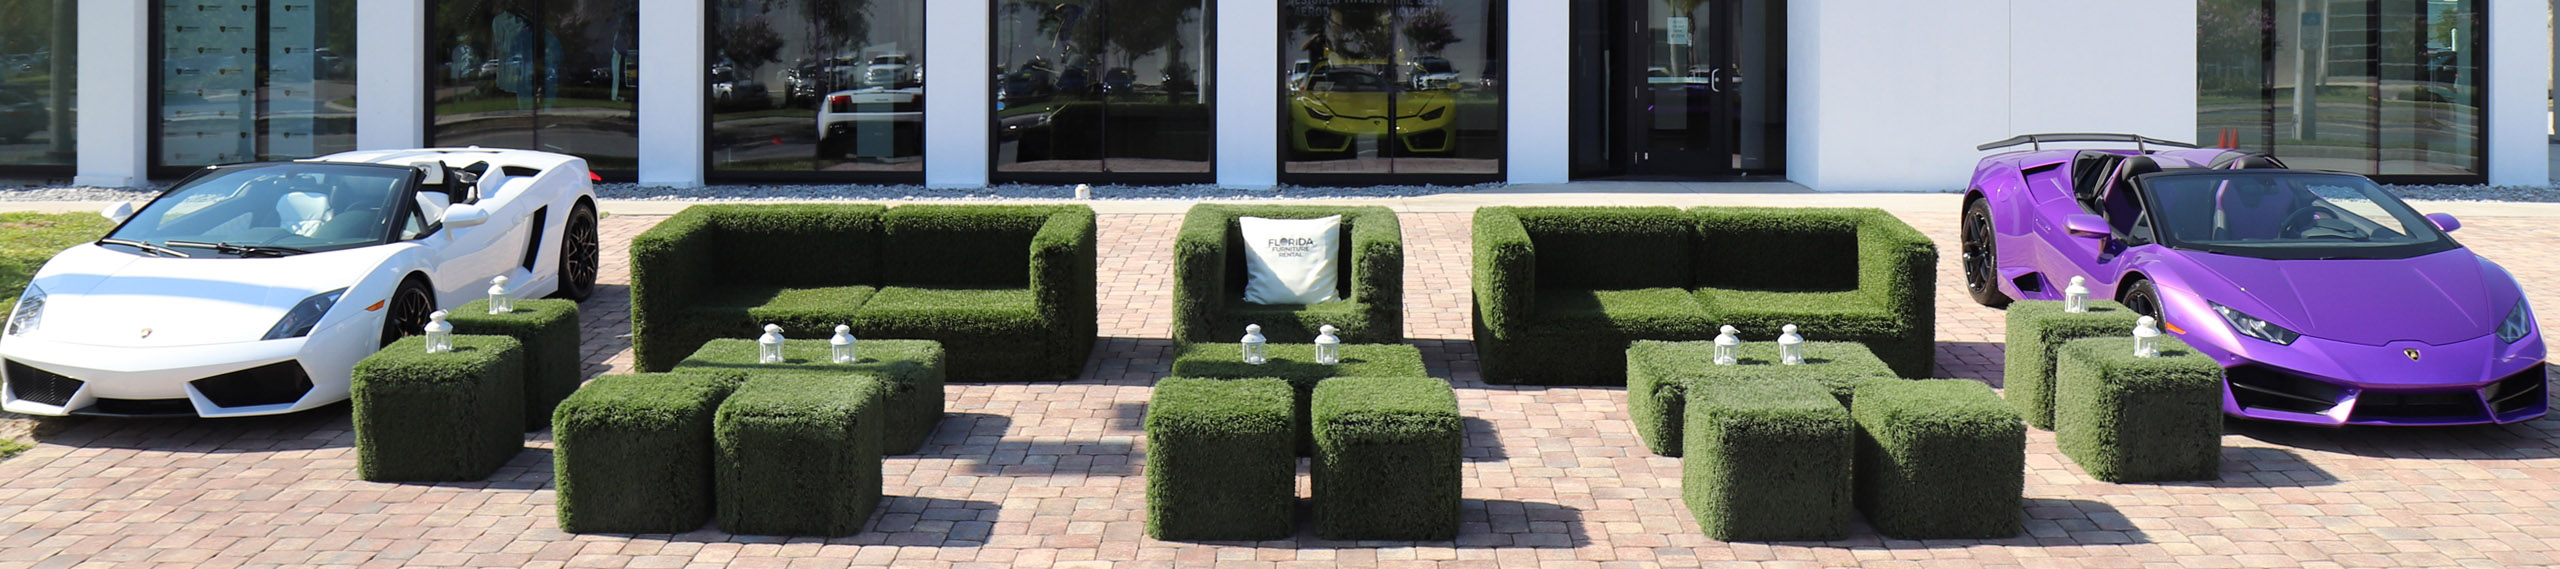 Grass-Furniture-Rentals-Florida-Furniture-Rental